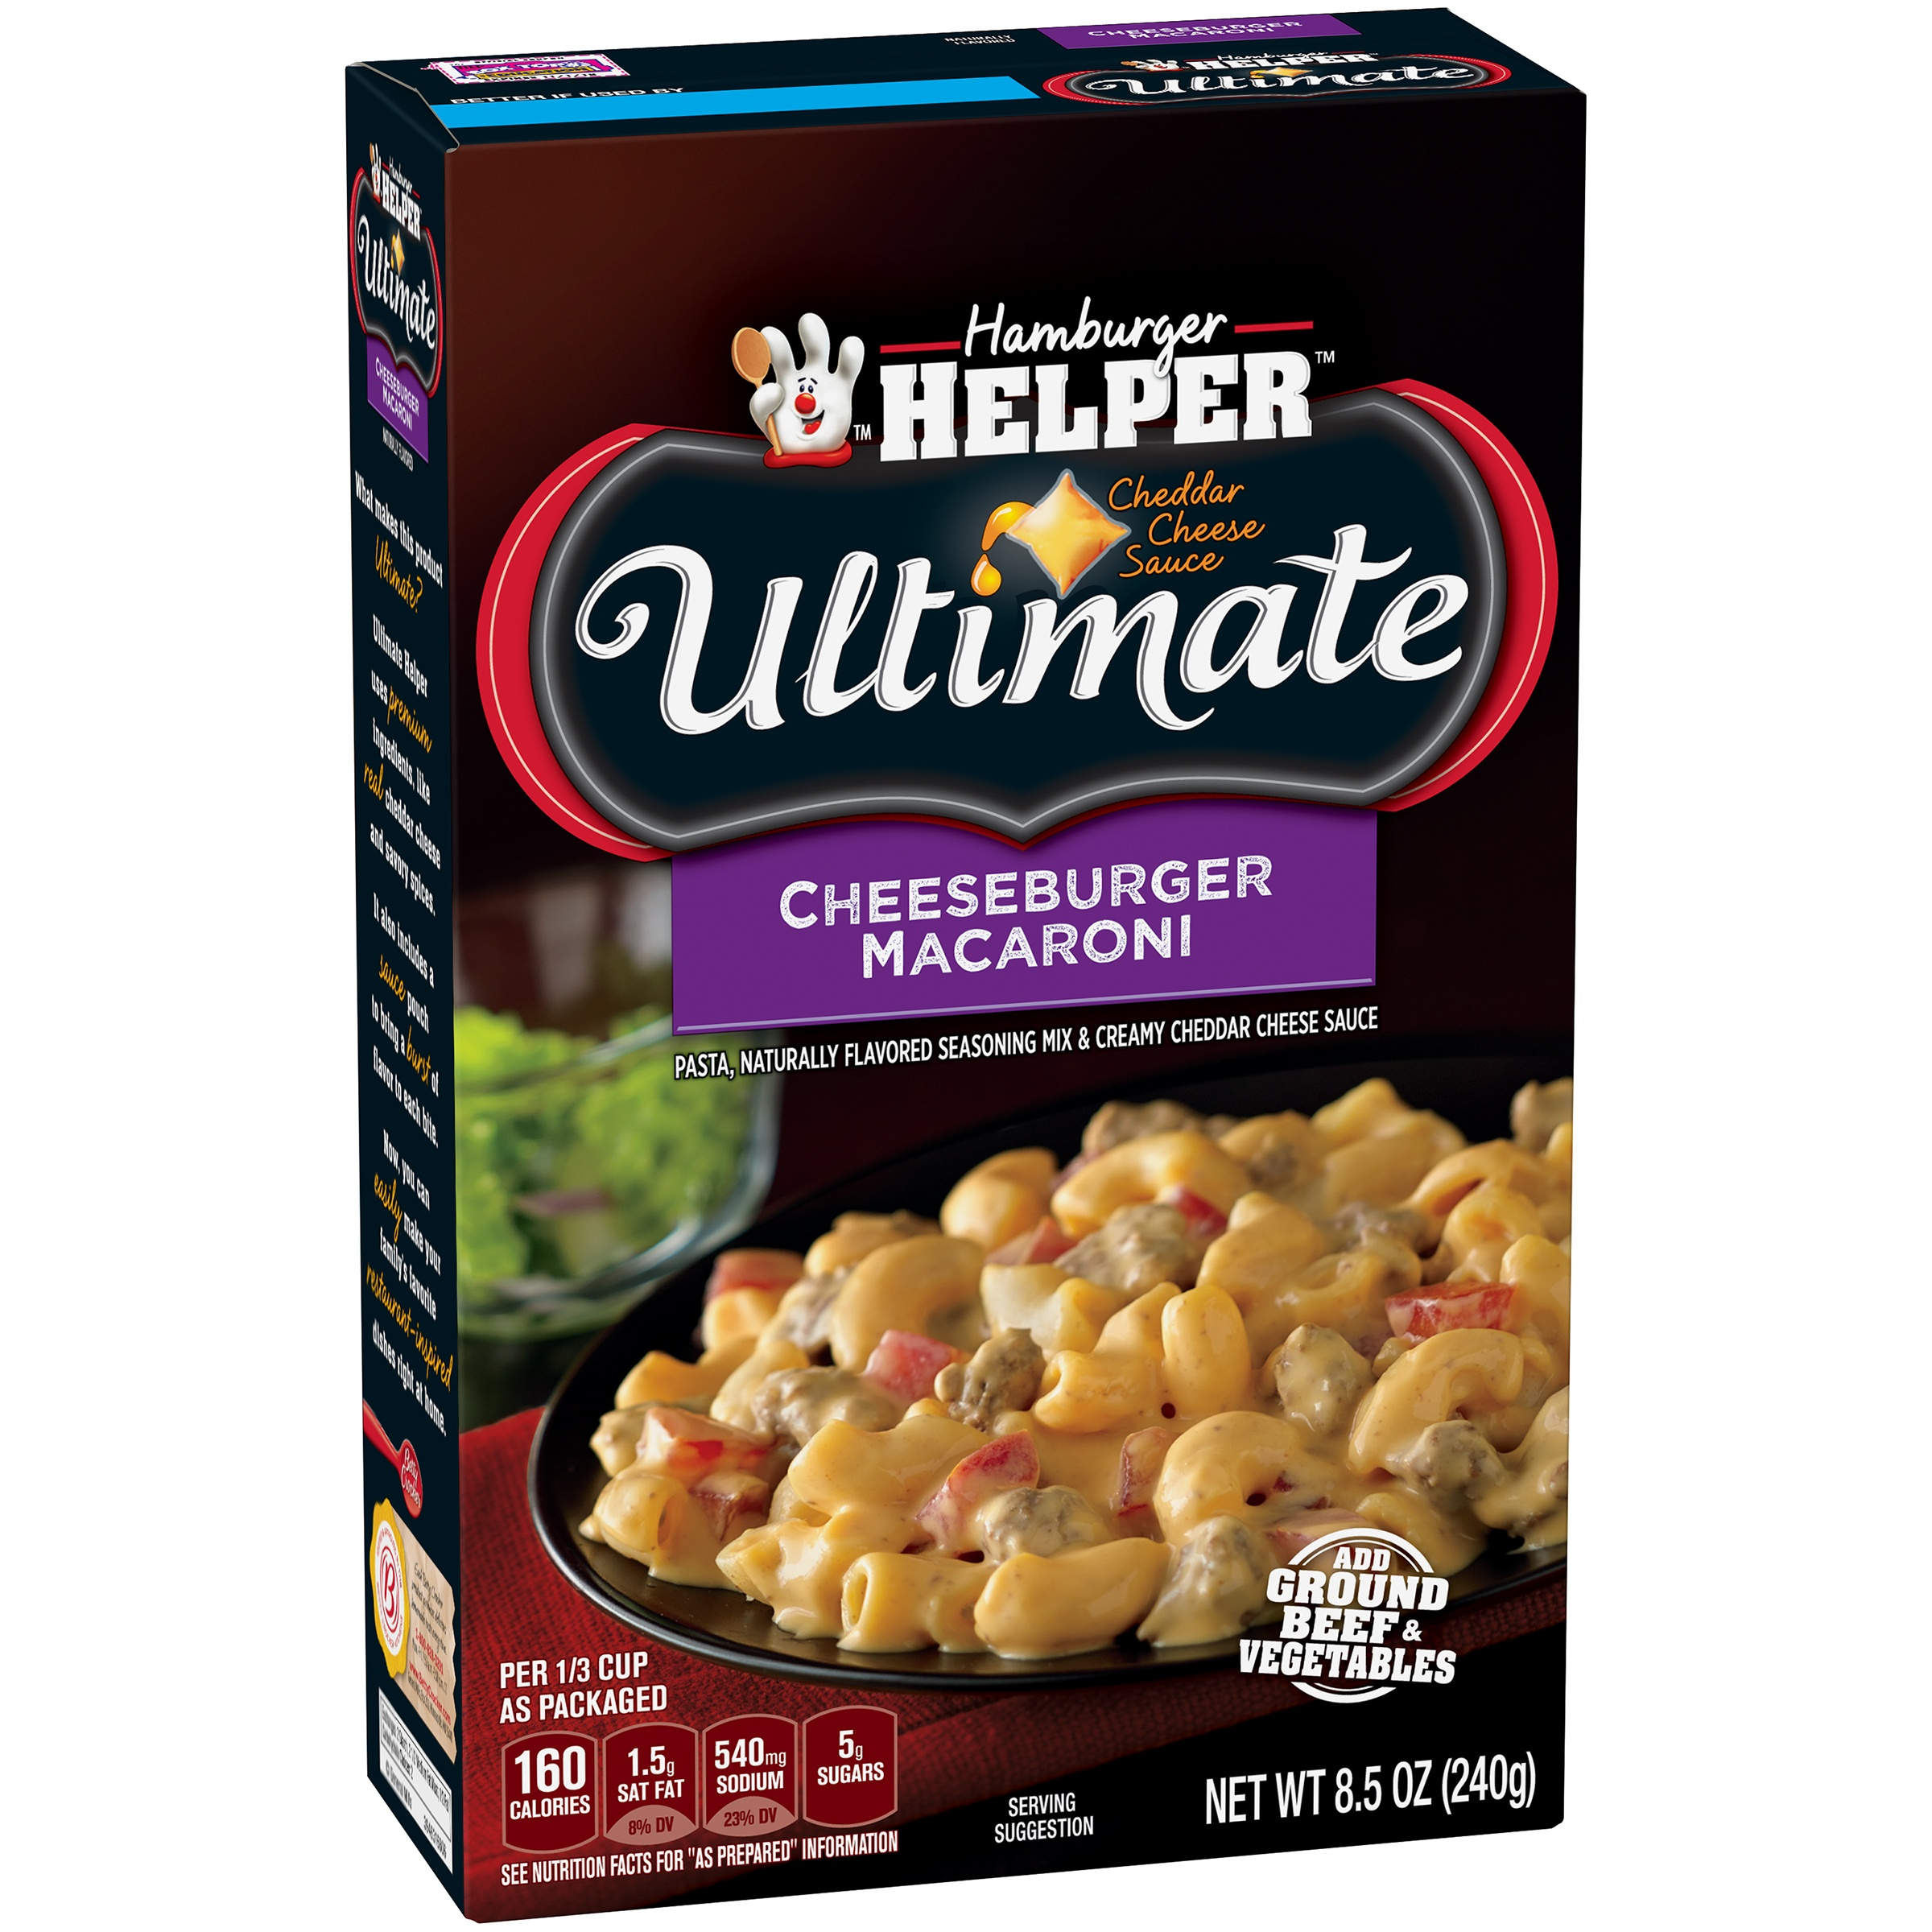 Betty Crocker Ultimate Cheeseburger Macaroni 8.5 oz Box